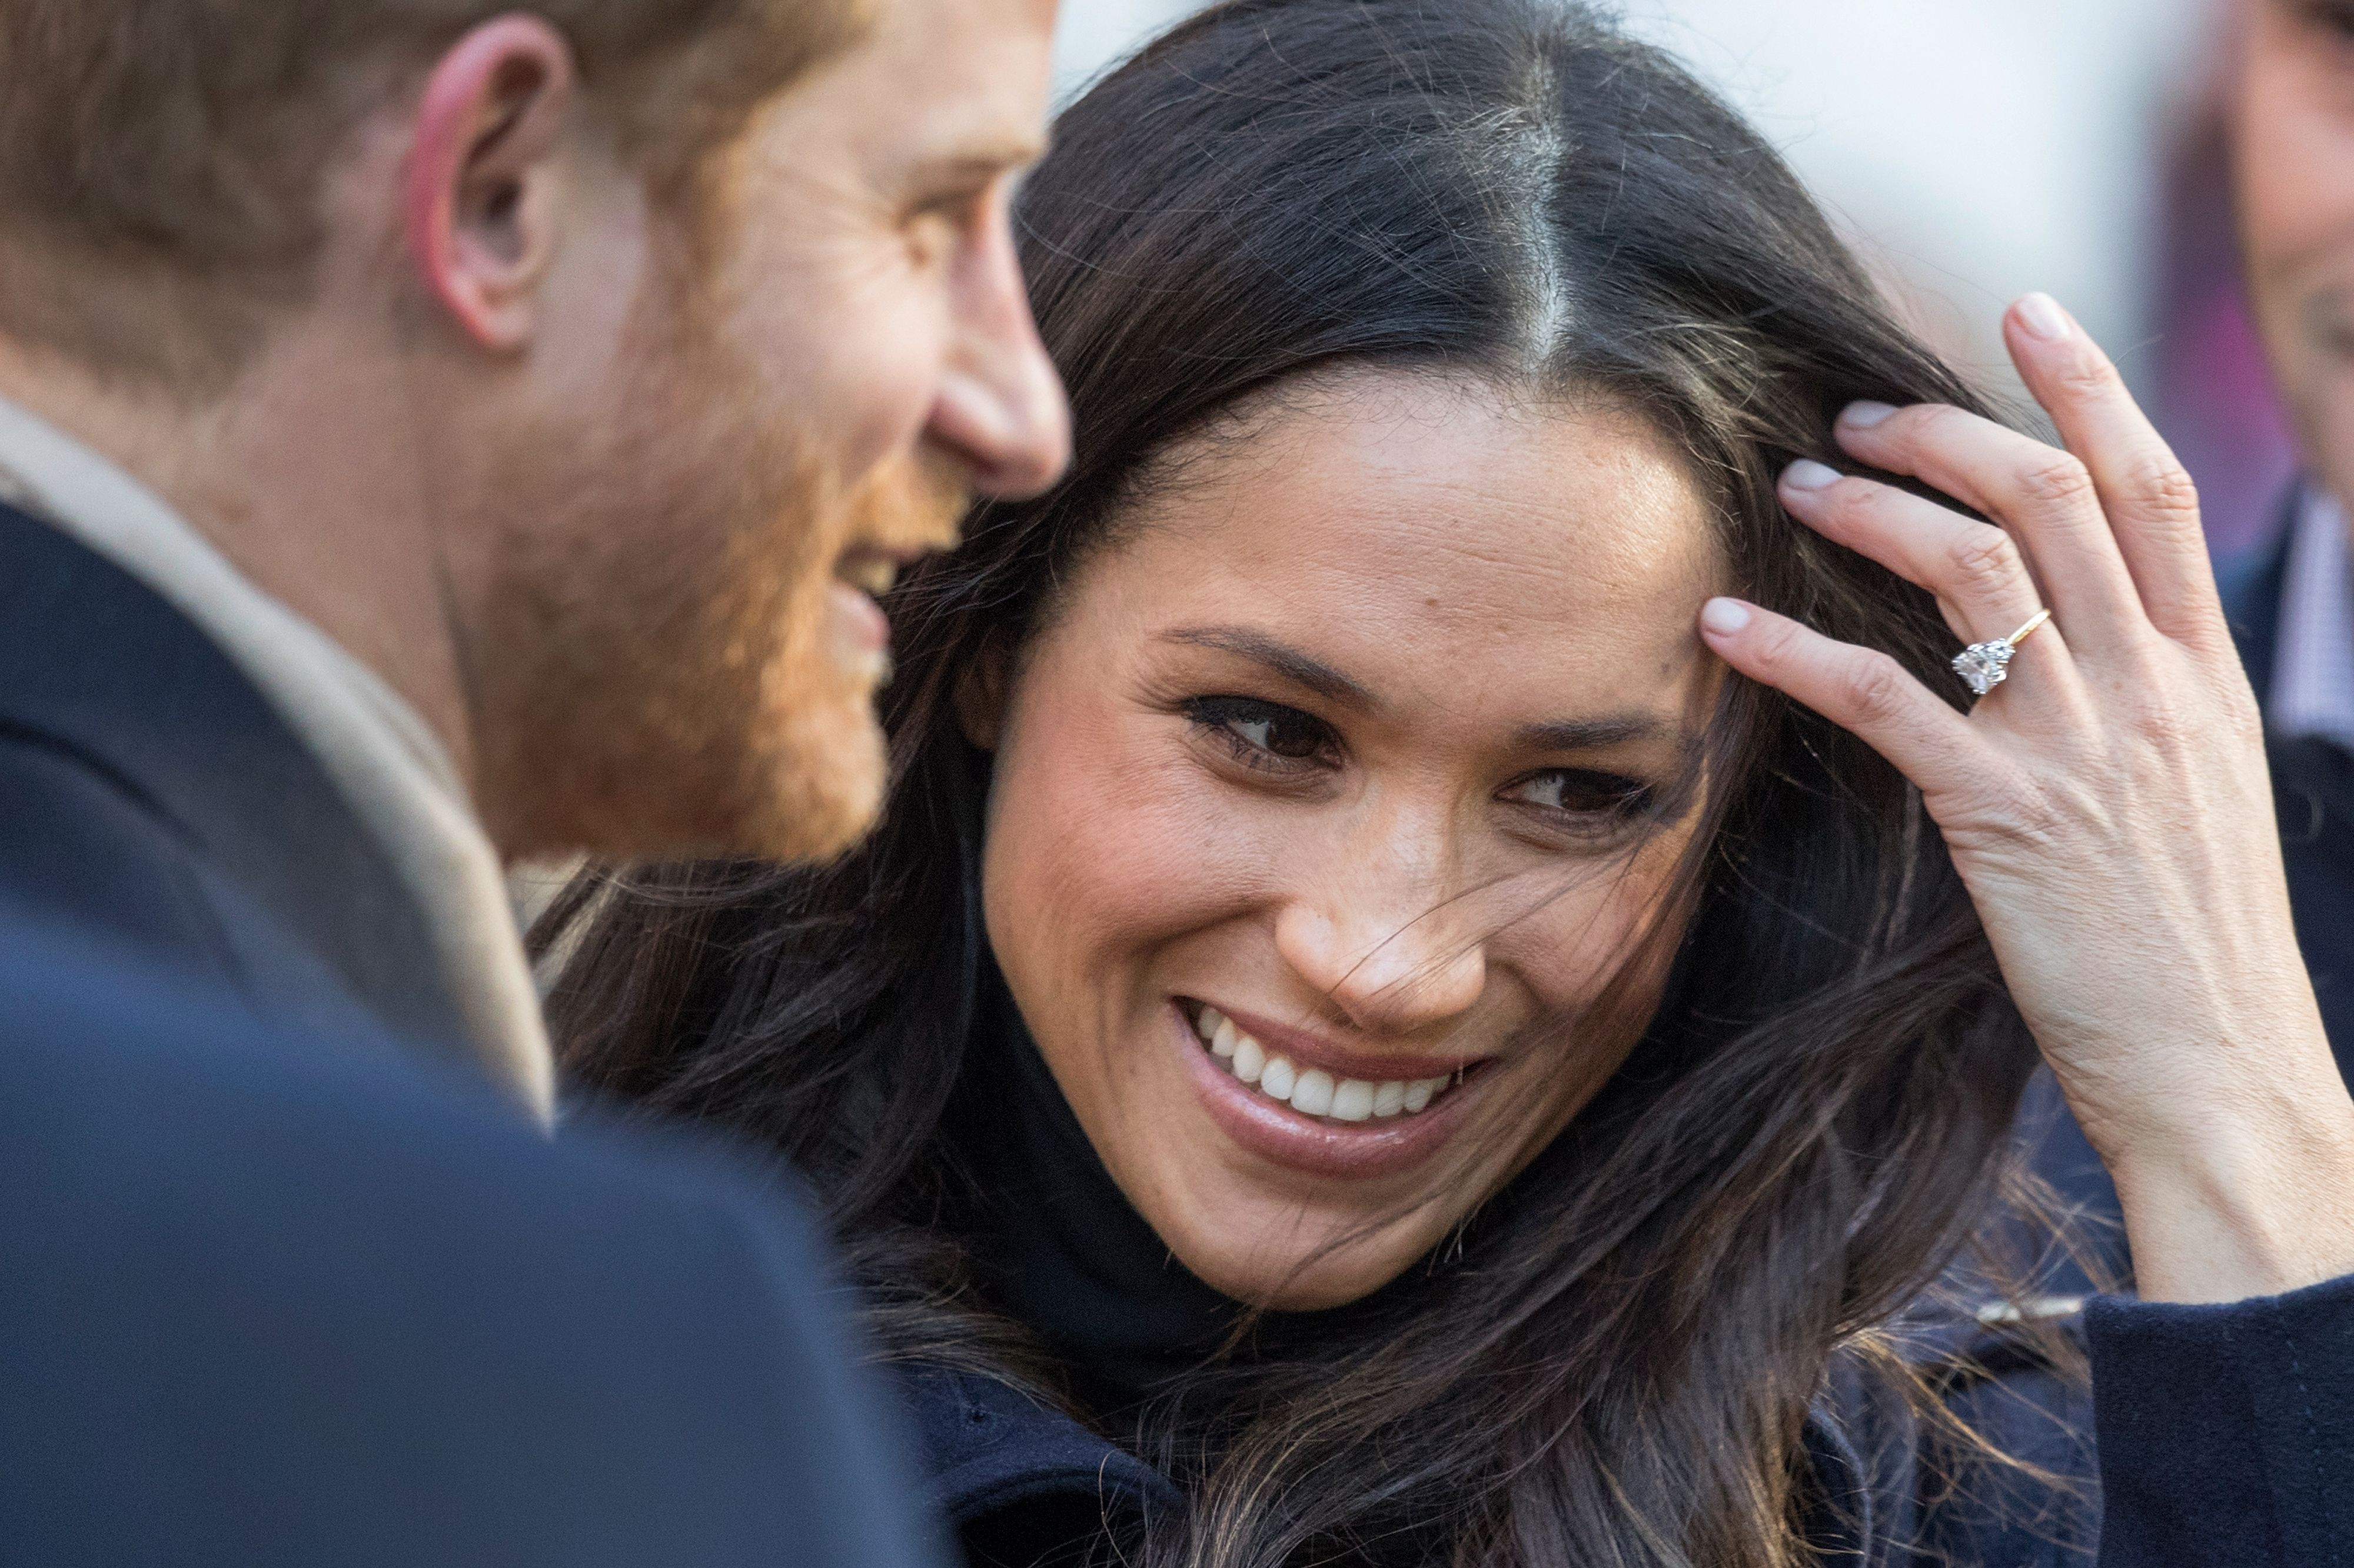 Prince Harry and Meghan Markle at the Terrance Higgins Trust World AIDS Day charity fair at Nottingham Contemporary on December 1, 2017 in Nottingham, England. | Source: Getty Images